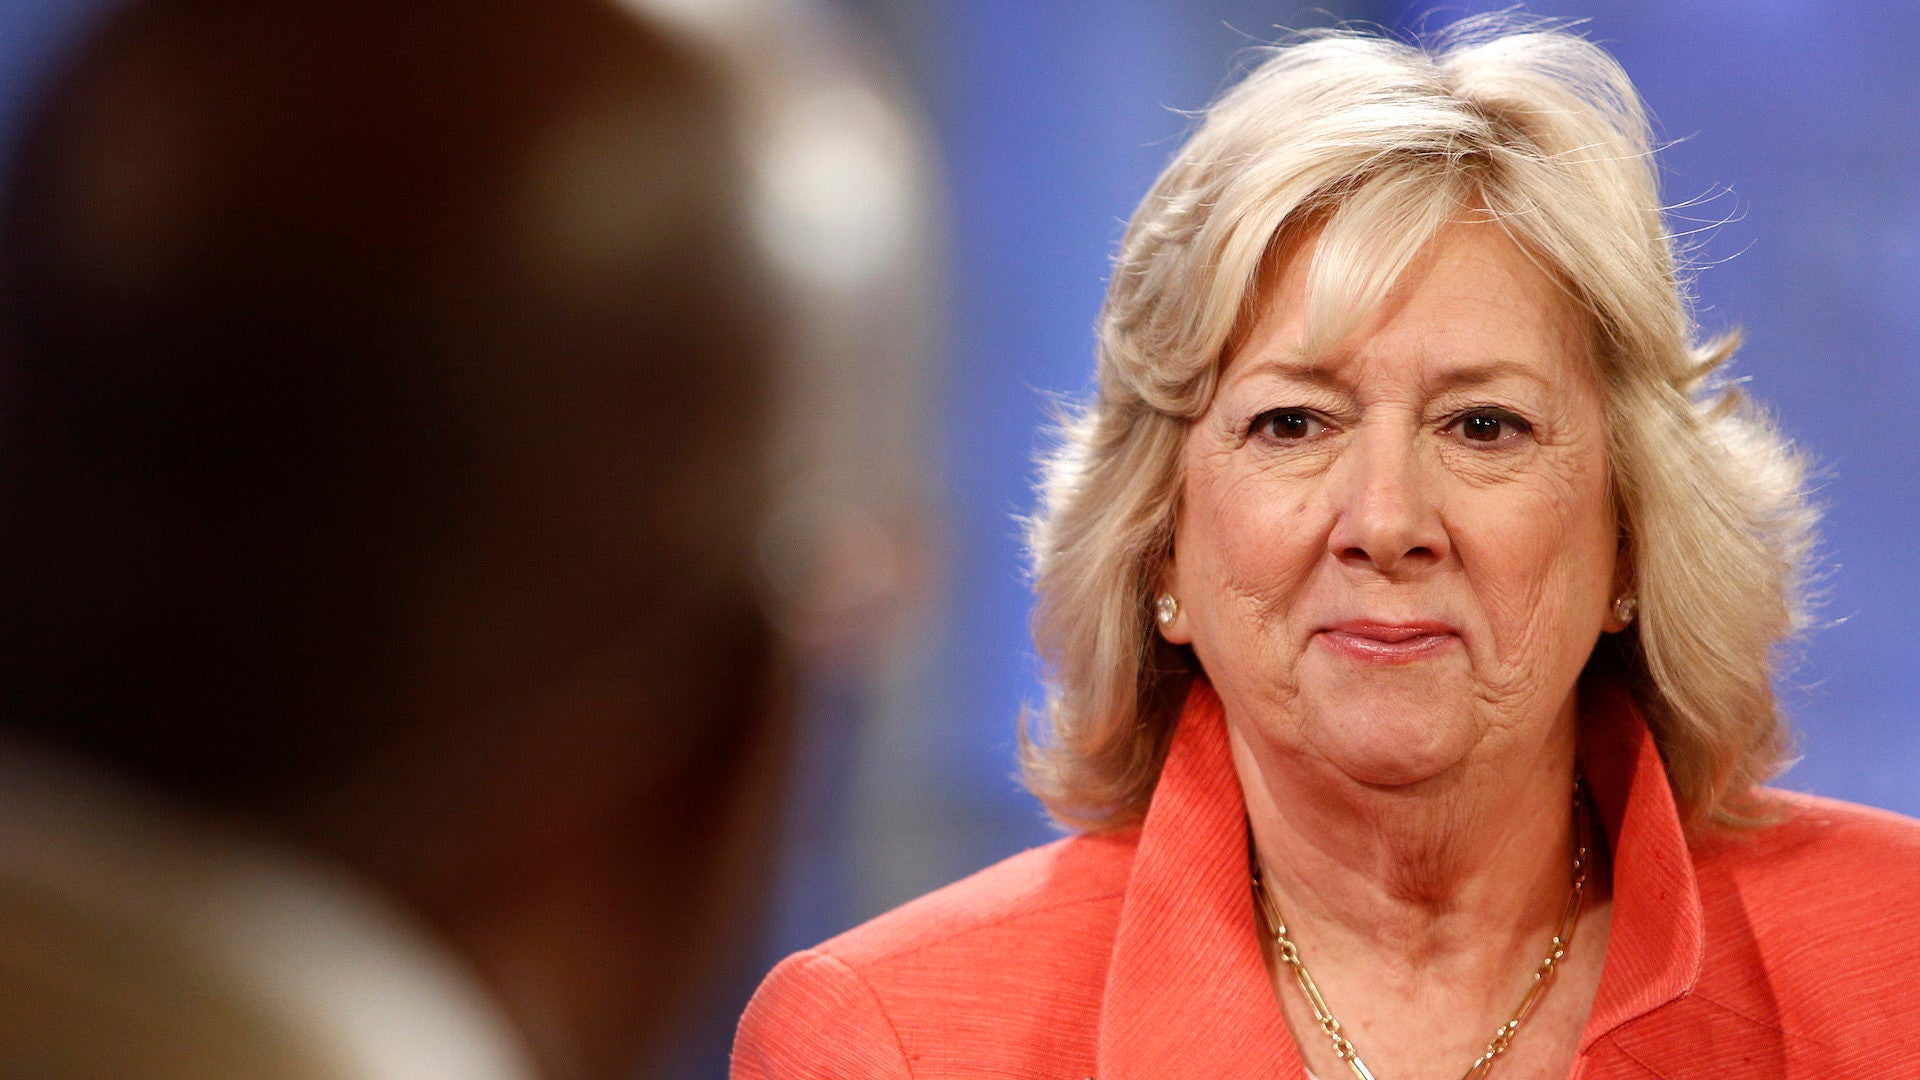 Former Prosecutor Linda Fairstein Says 'When They See Us' 'Is Full Of Distortions'